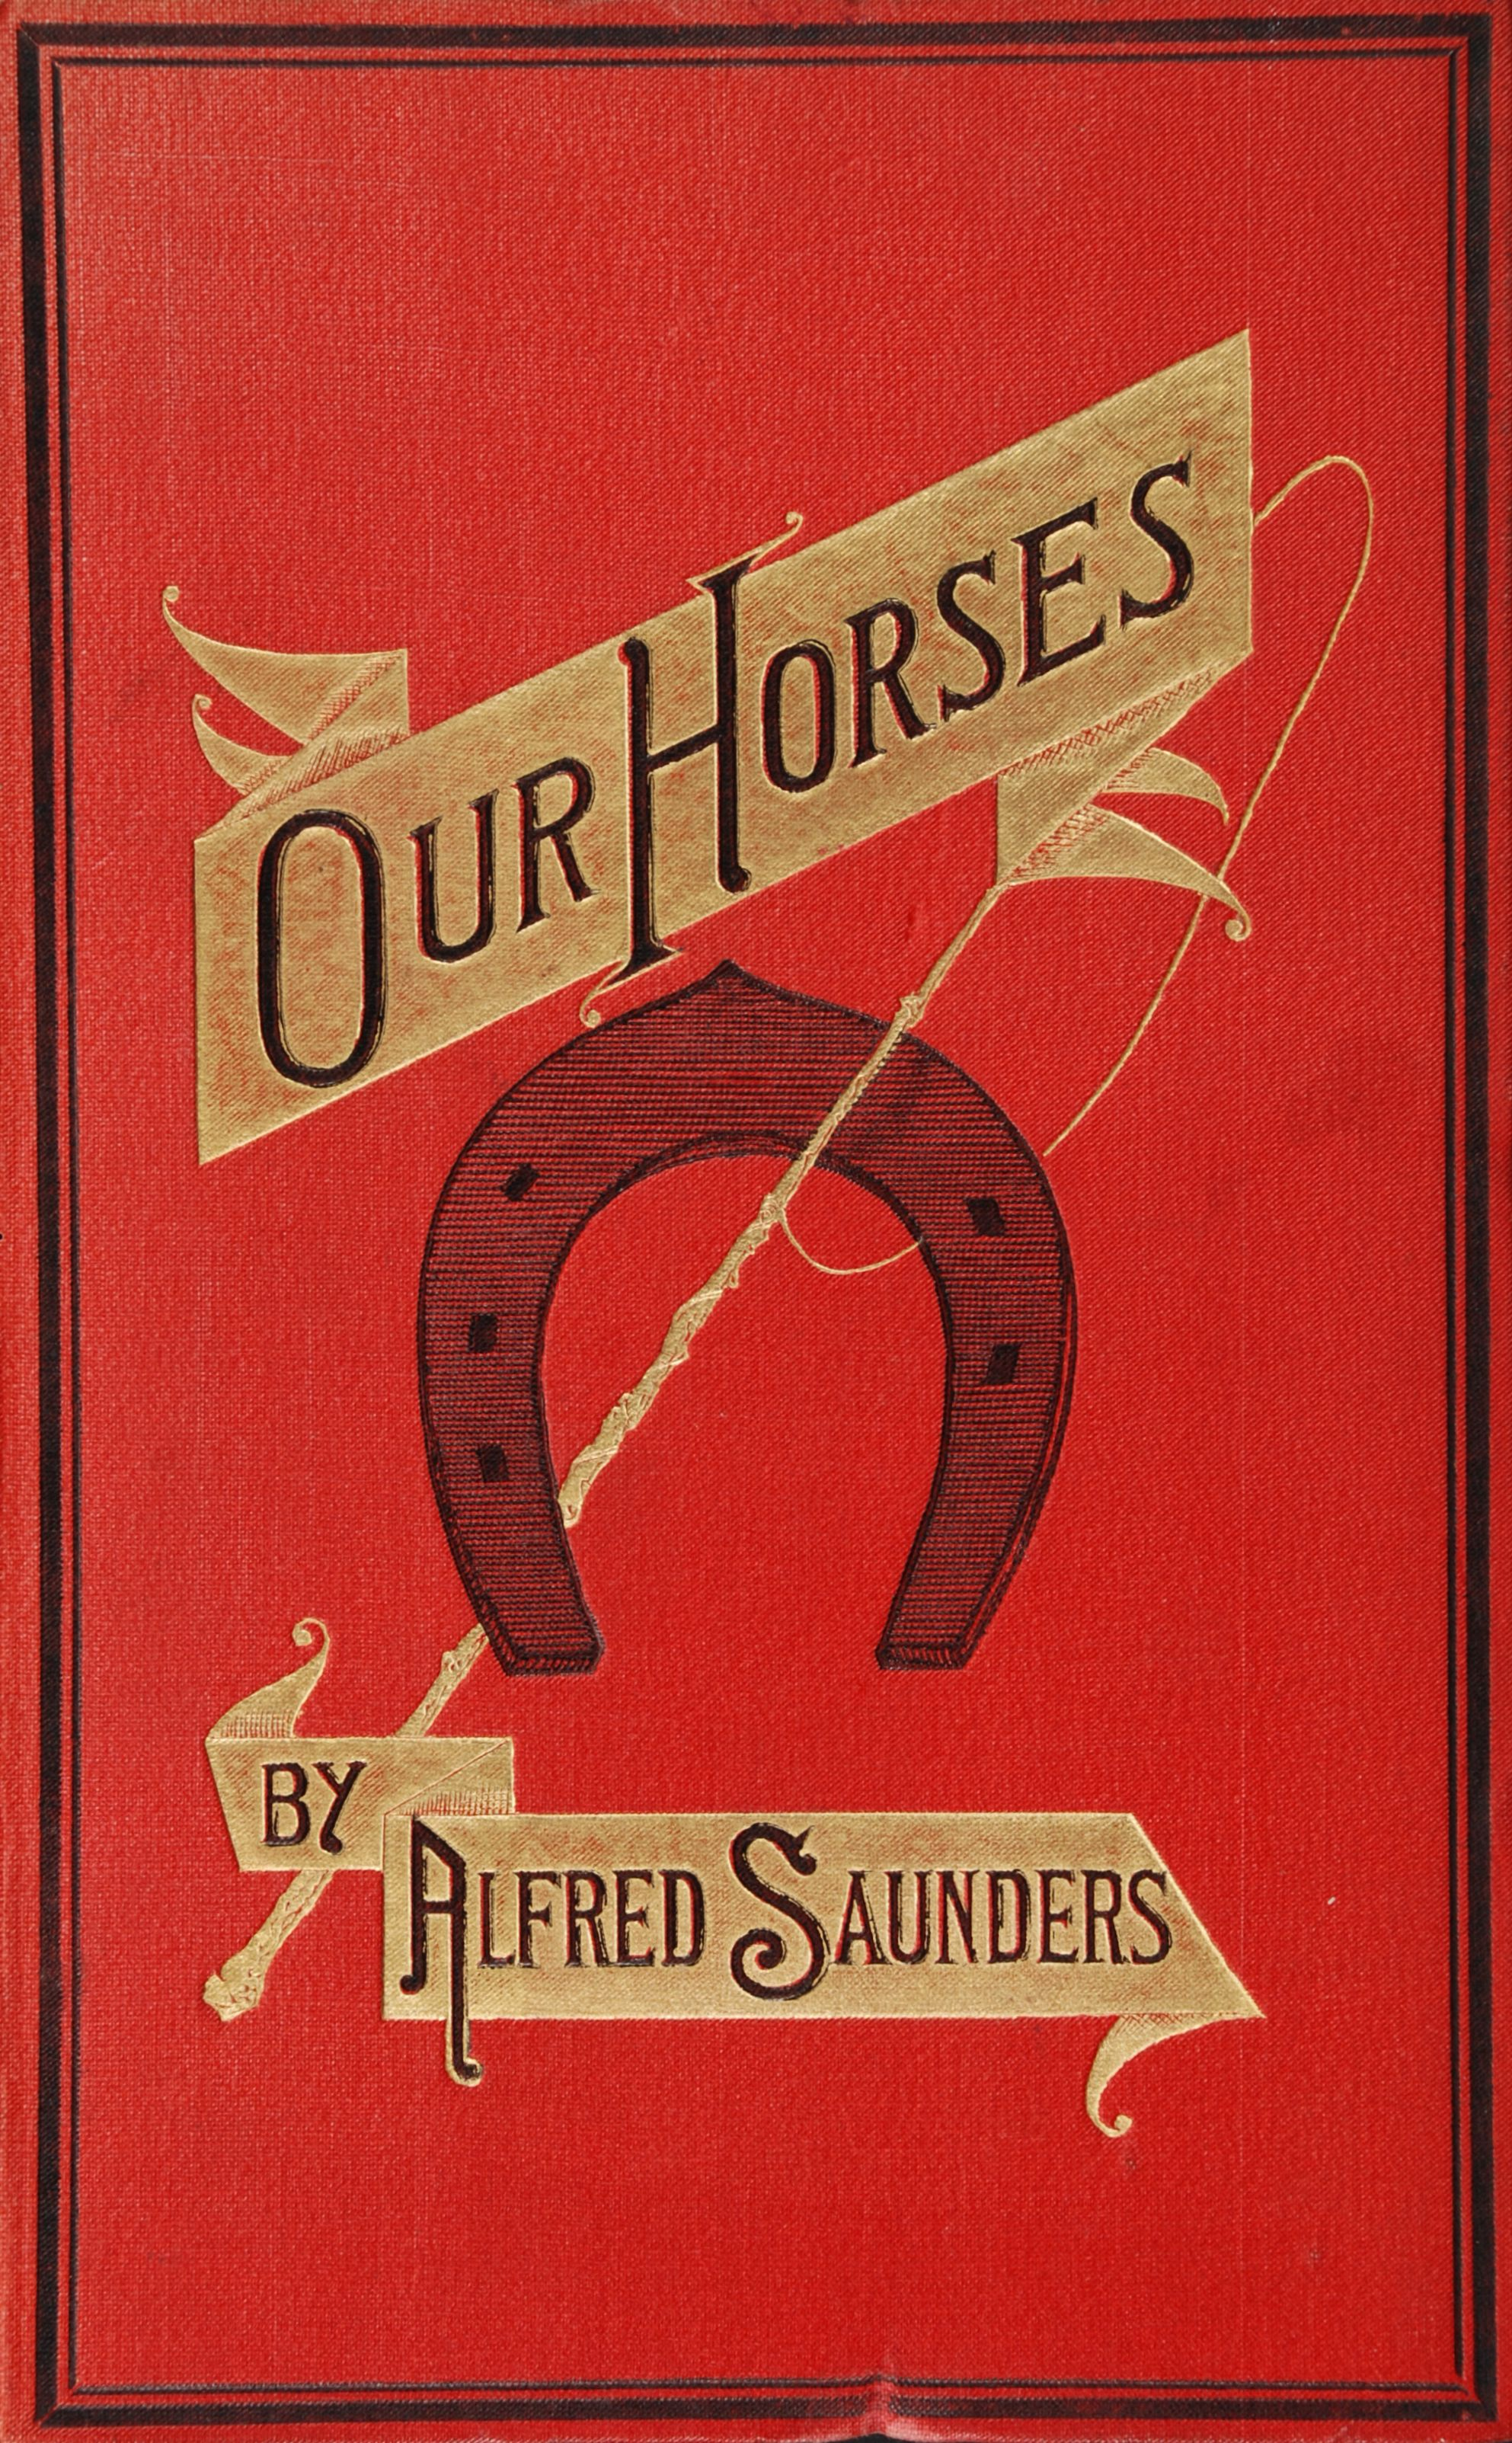 Alfred Saunders. Our Horses: or, the best muscles controlled by the best brains. London: Sampson Low, Marston, Searle & Rivington, 1886.